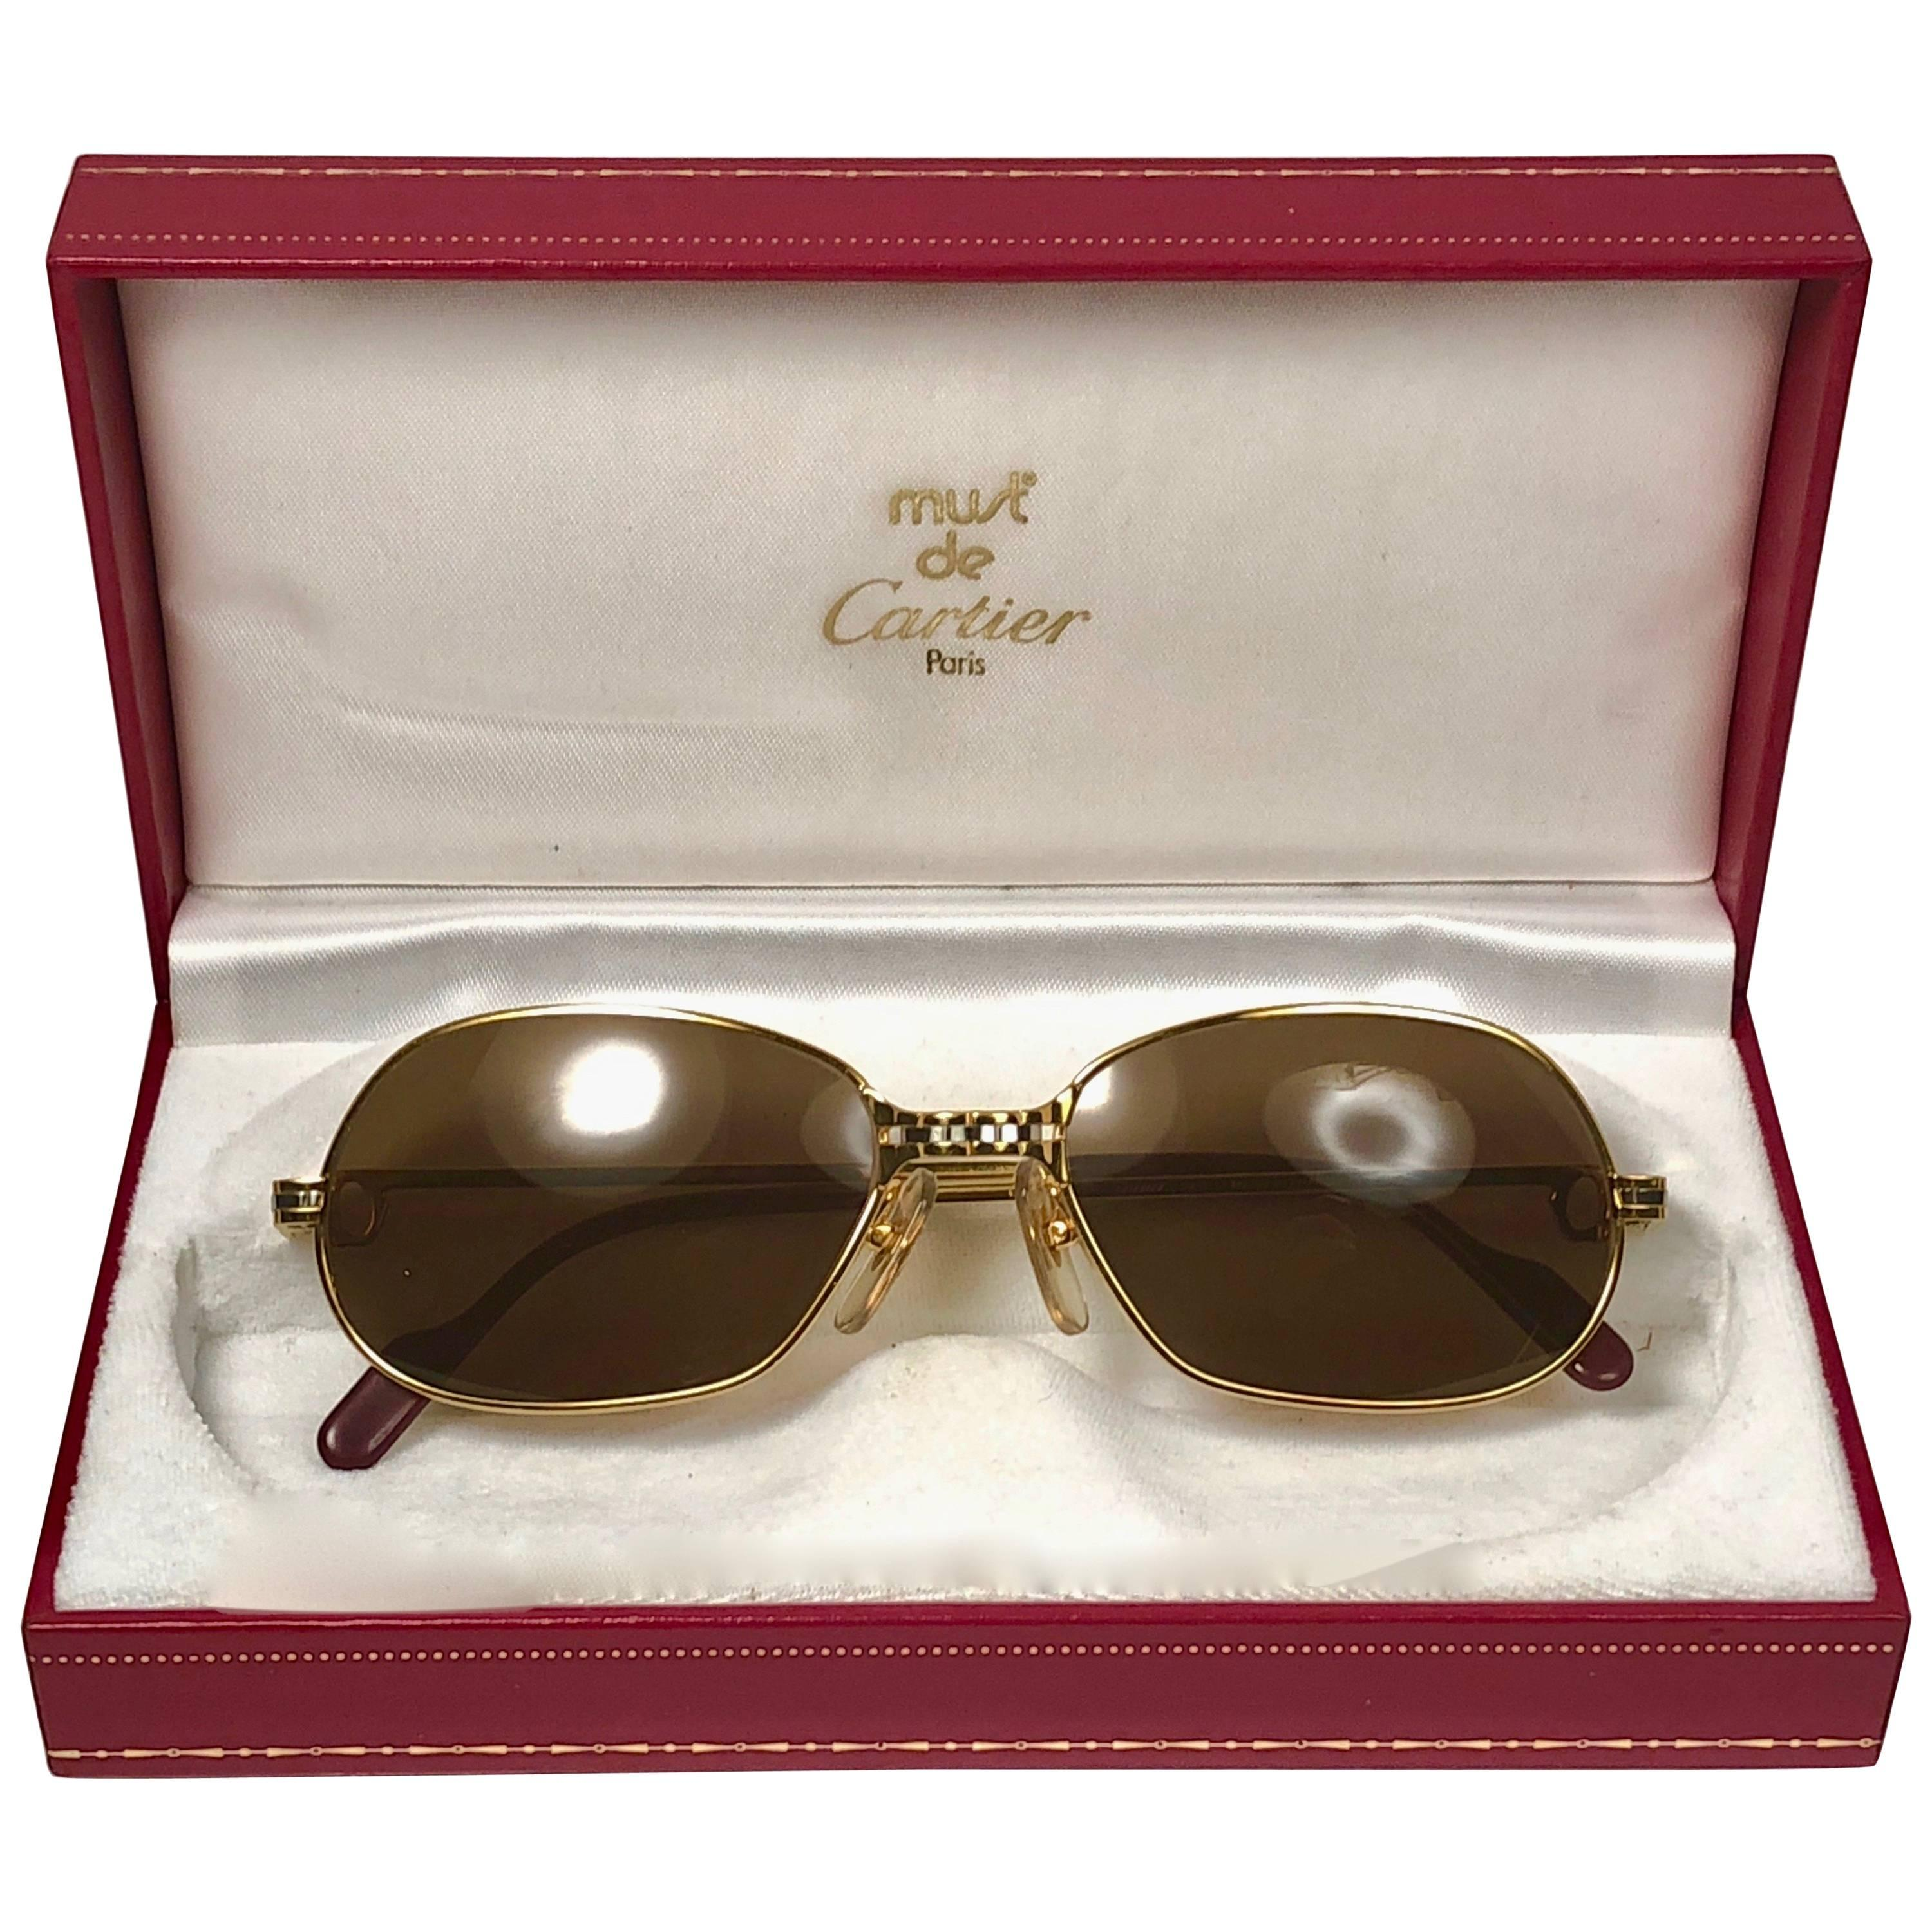 361689cc2274 Vintage Cartier Oval Gold Antares 49mm Frame 18k Plated Sunglasses France  For Sale at 1stdibs